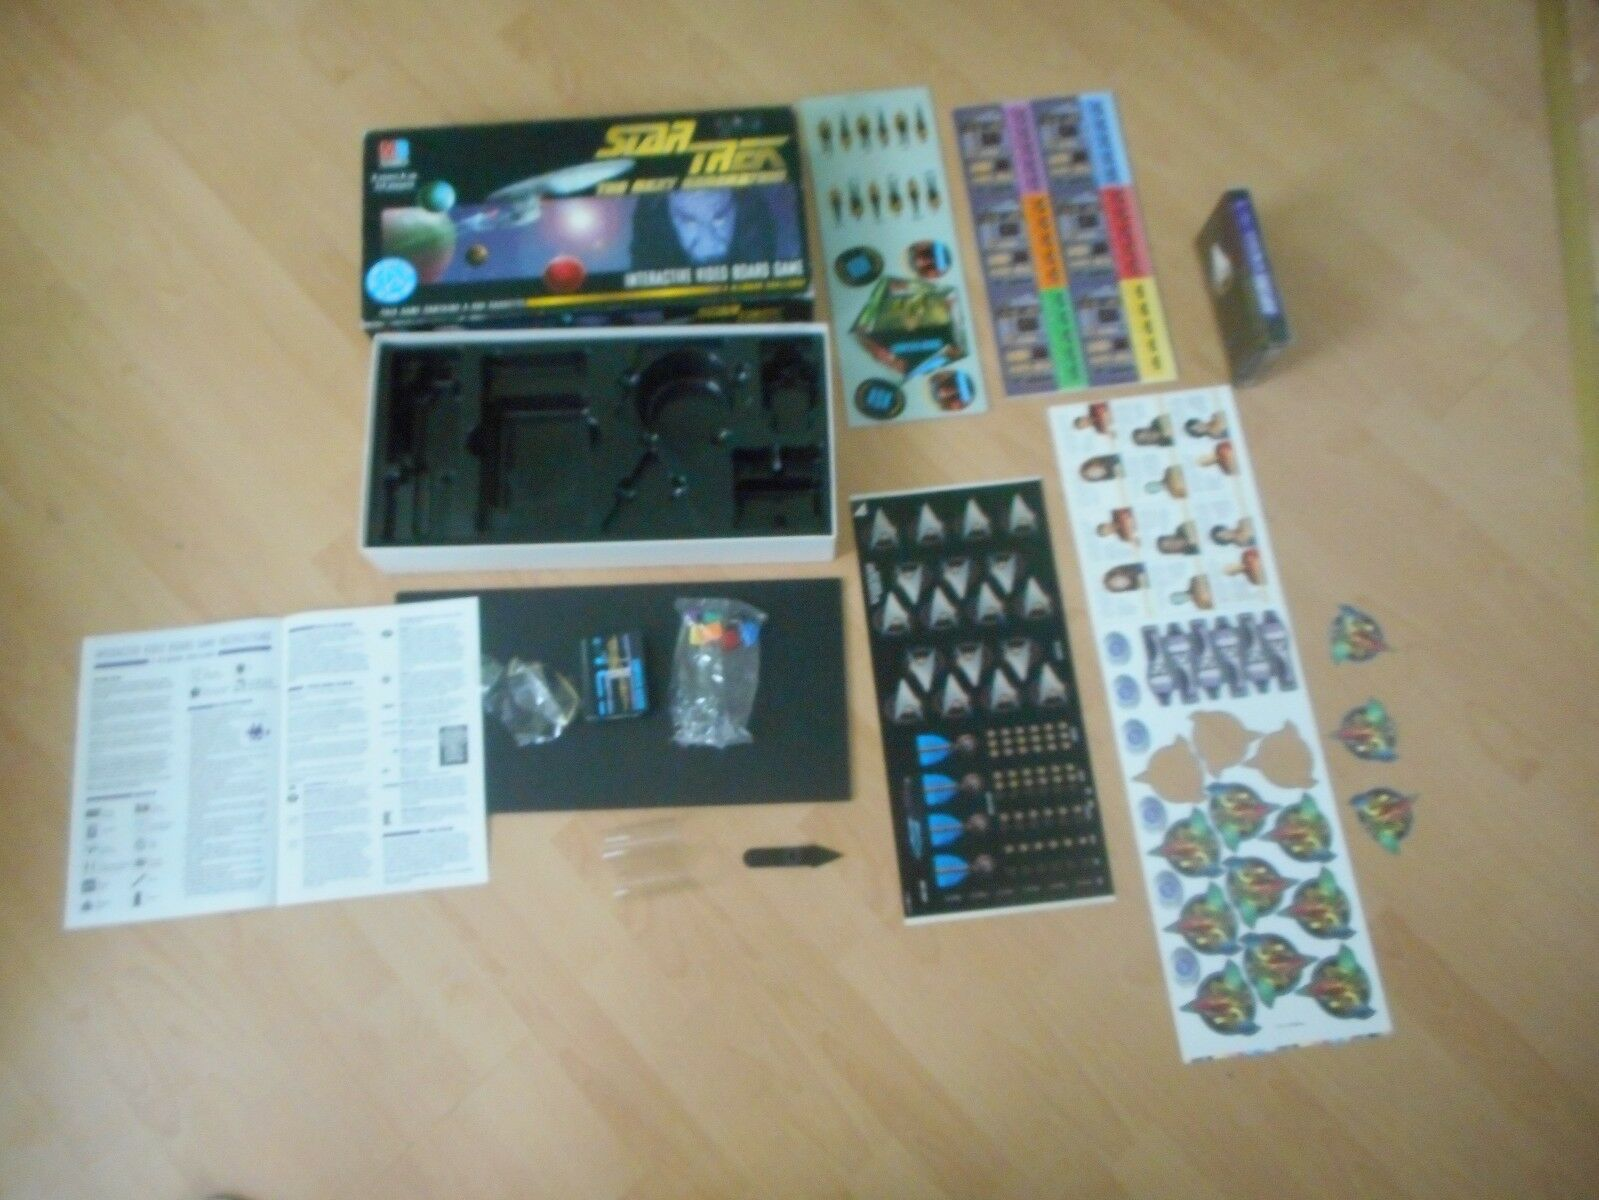 Star Trek Next Generation Interactive Video Board Game Nuovo Sealed Interior Parts